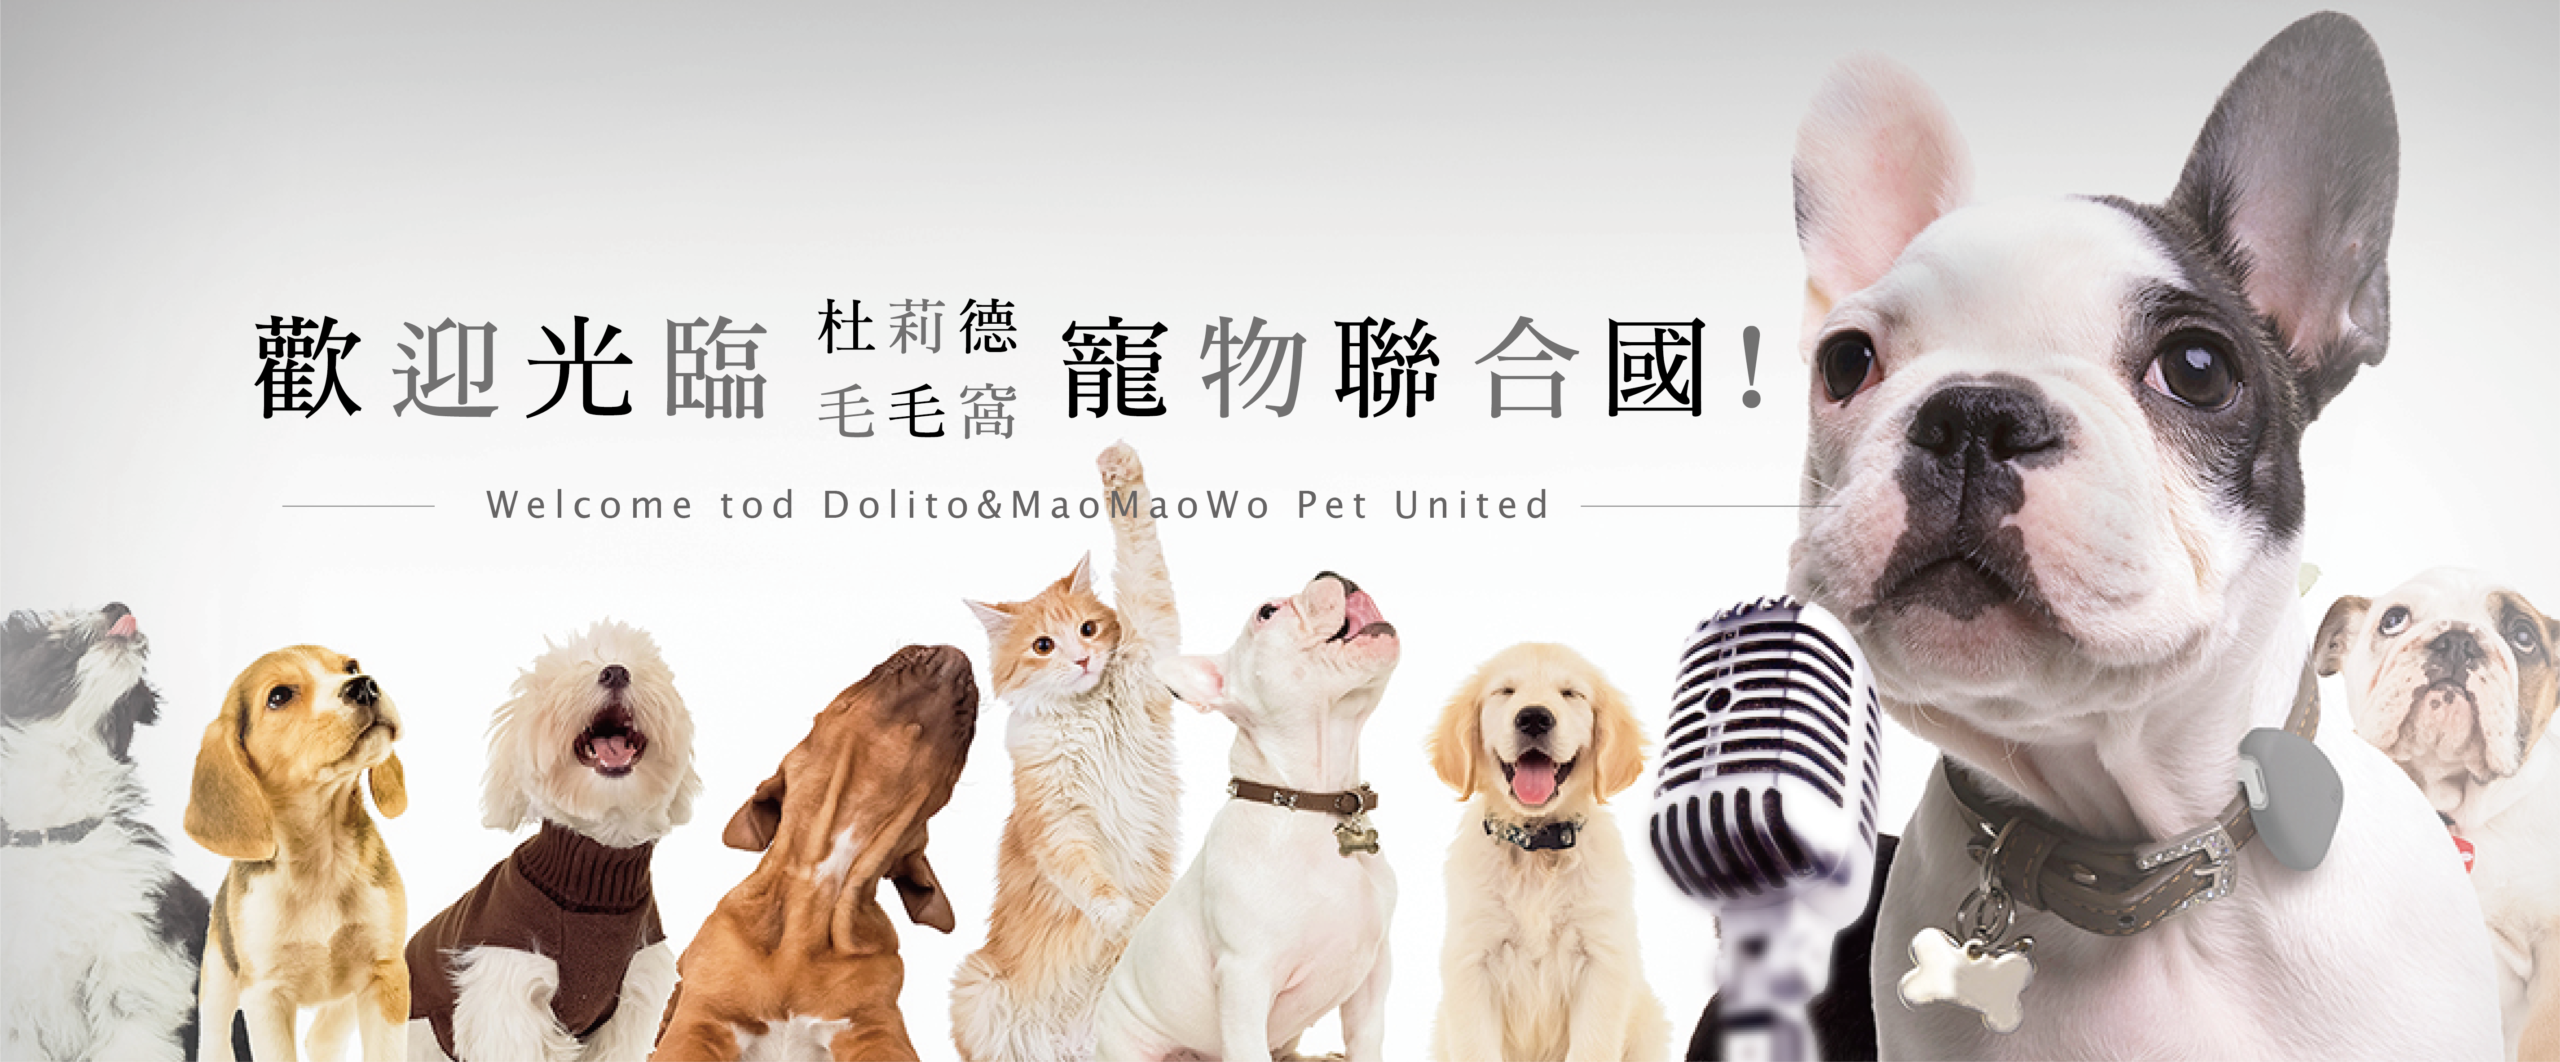 header_dolito_pet_unitednations_001